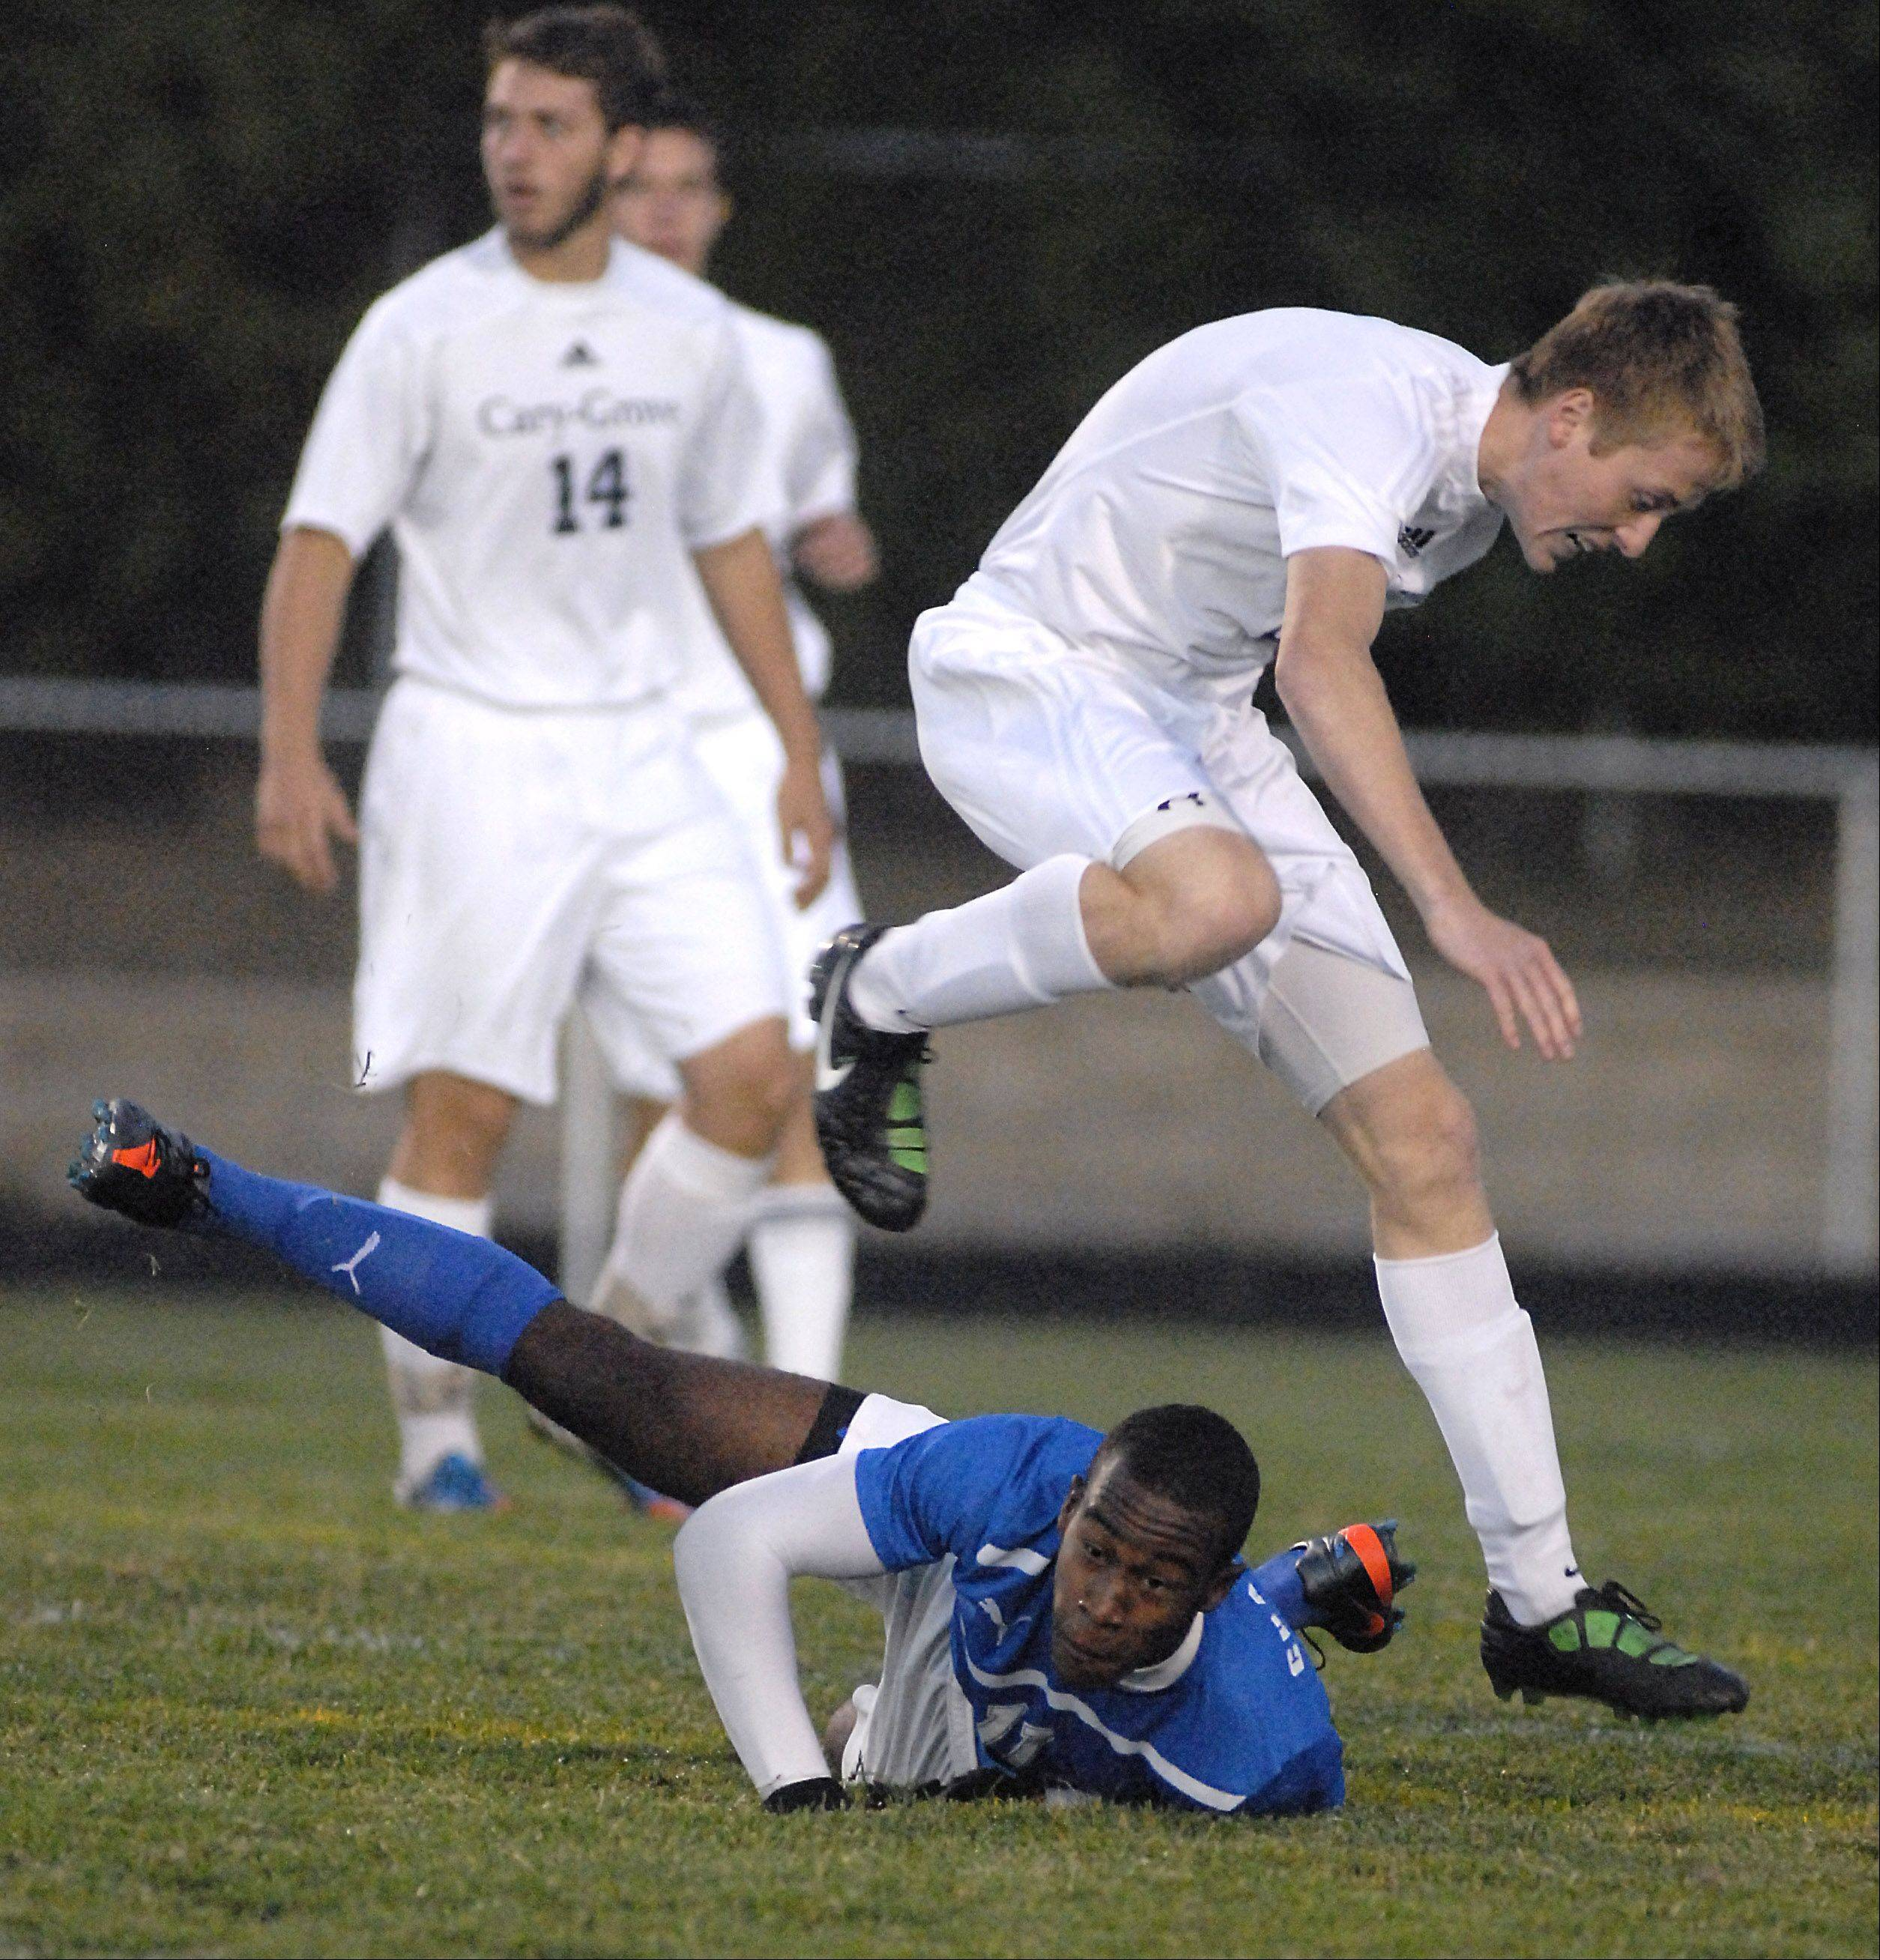 Cary-Grove's Brian O'Connor leaps over Dundee-Crown's Malik Washington to avoid a collision in the first half on Tuesday, October 2.